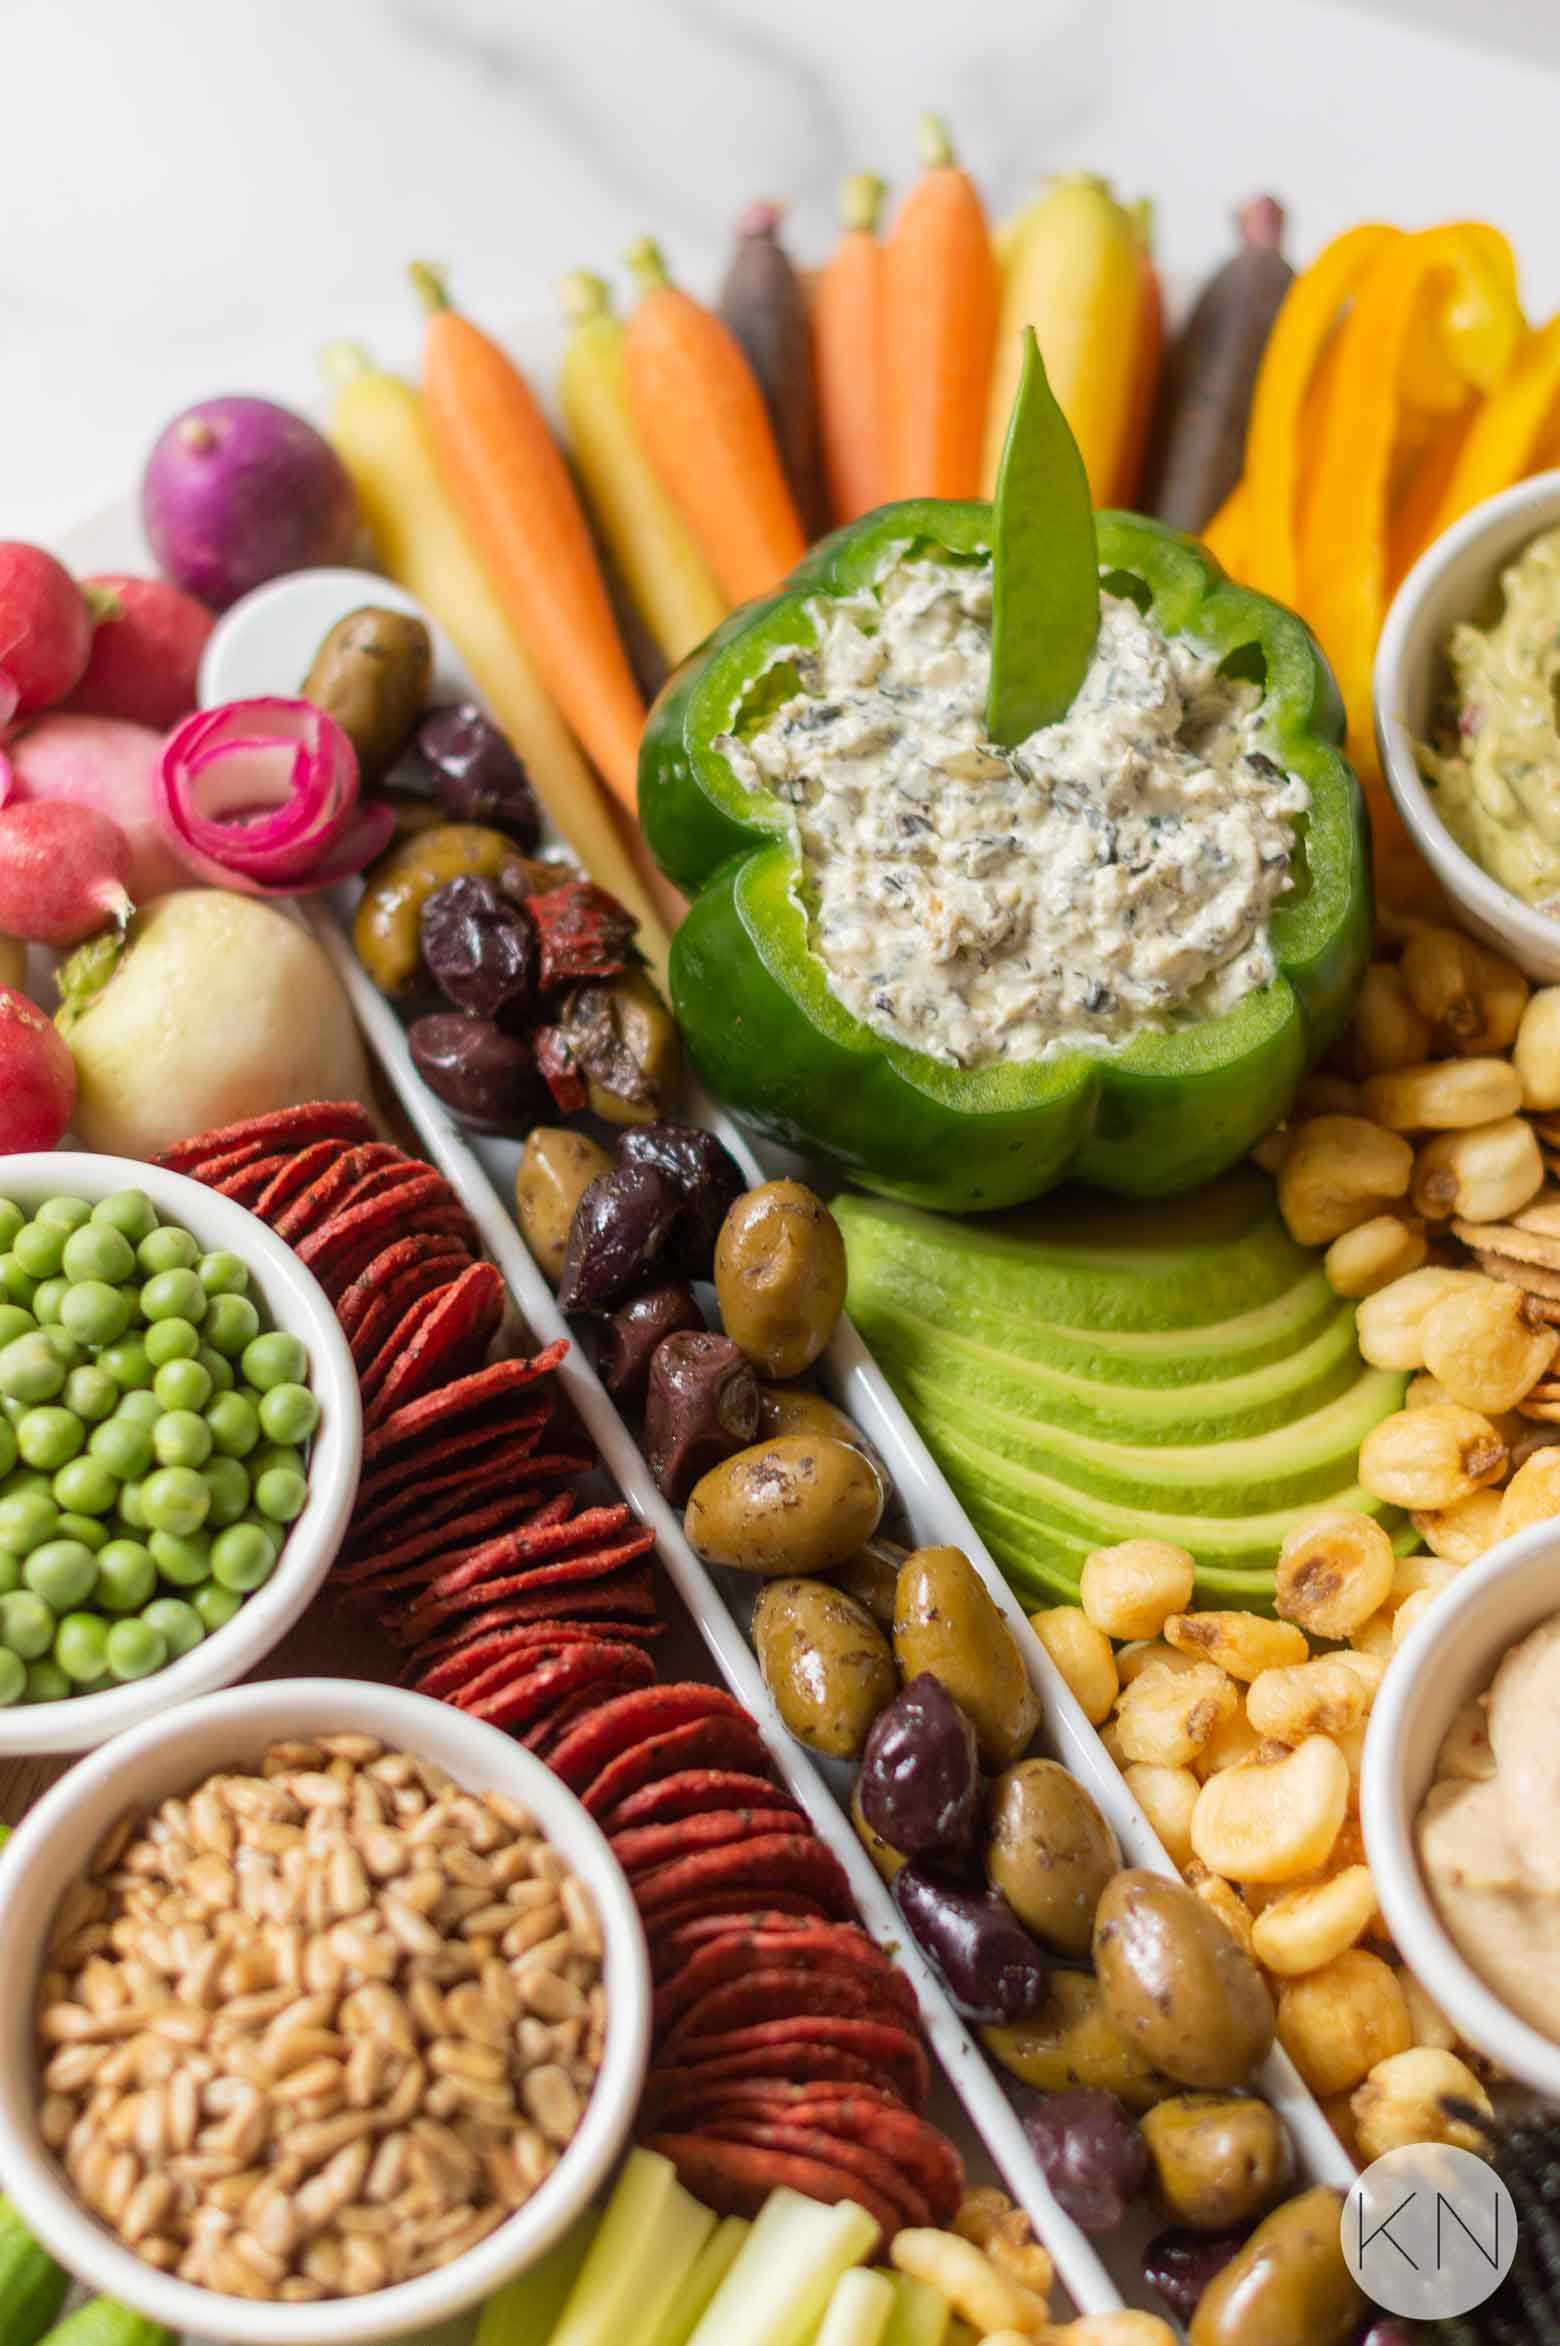 Vegetarian Crudité Board for a Meatless Party Tray